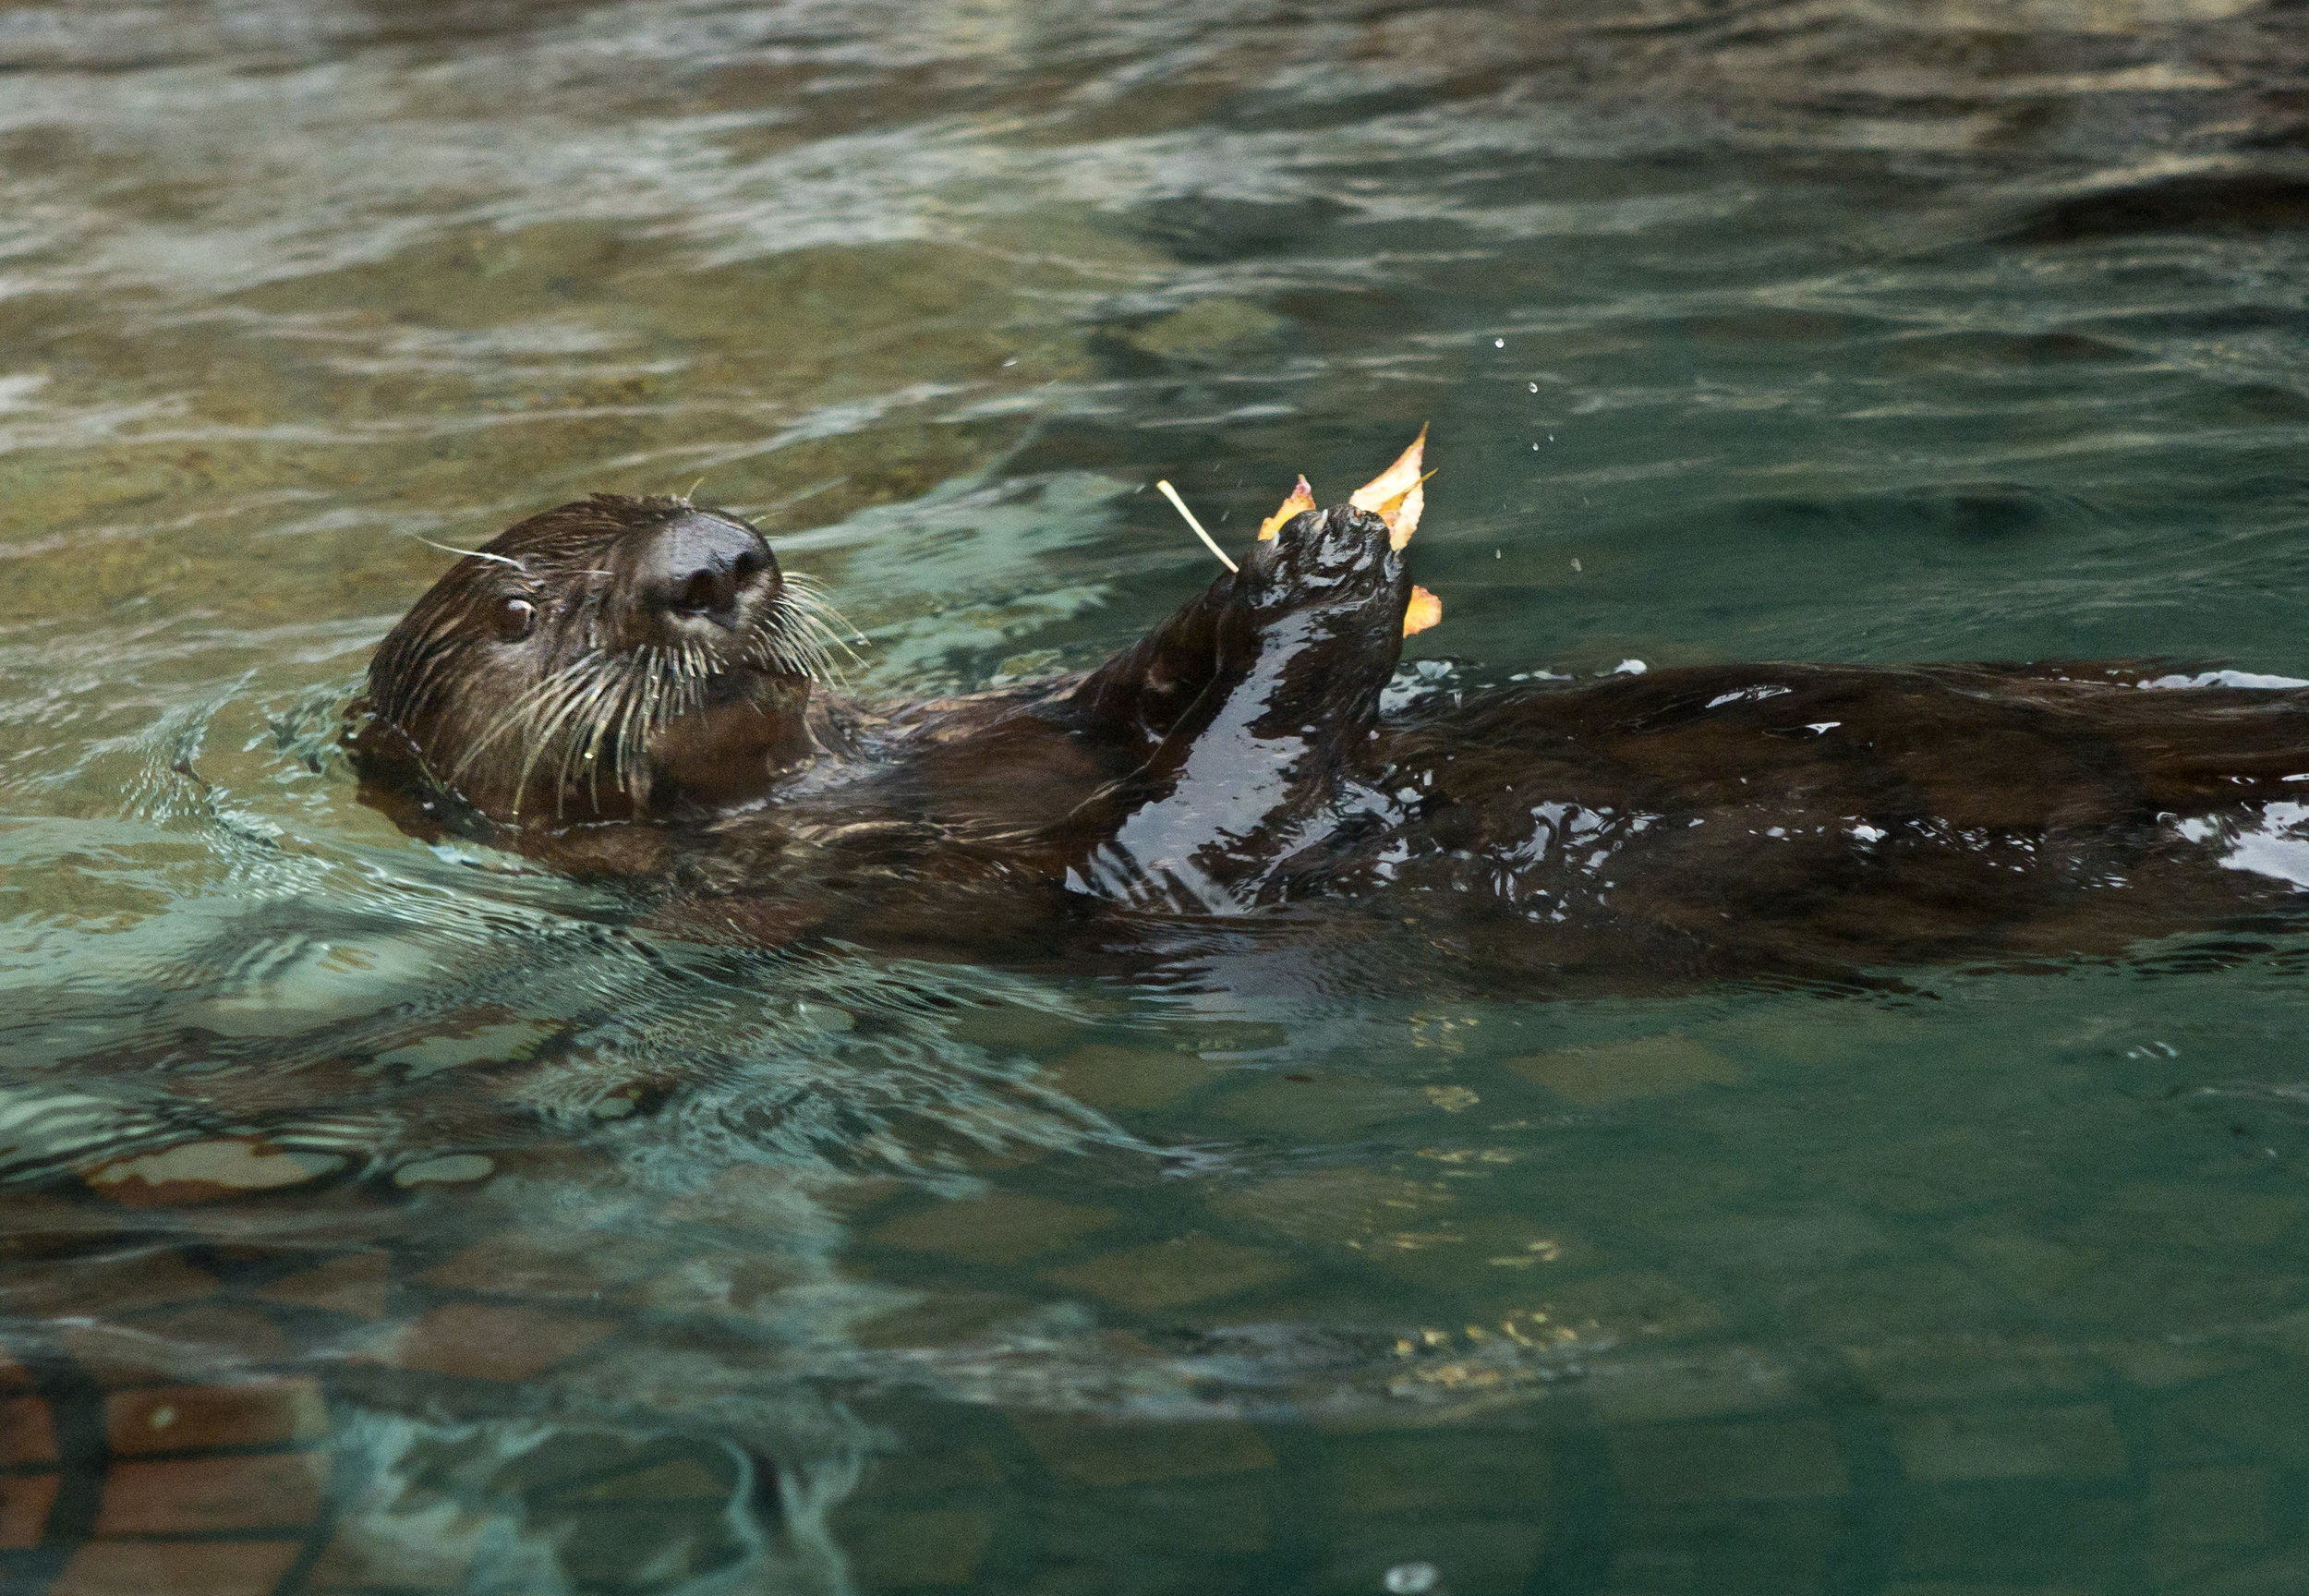 Sea Otter Sekiu Plays with a Fallen Leaf at the Seattle Aquarium